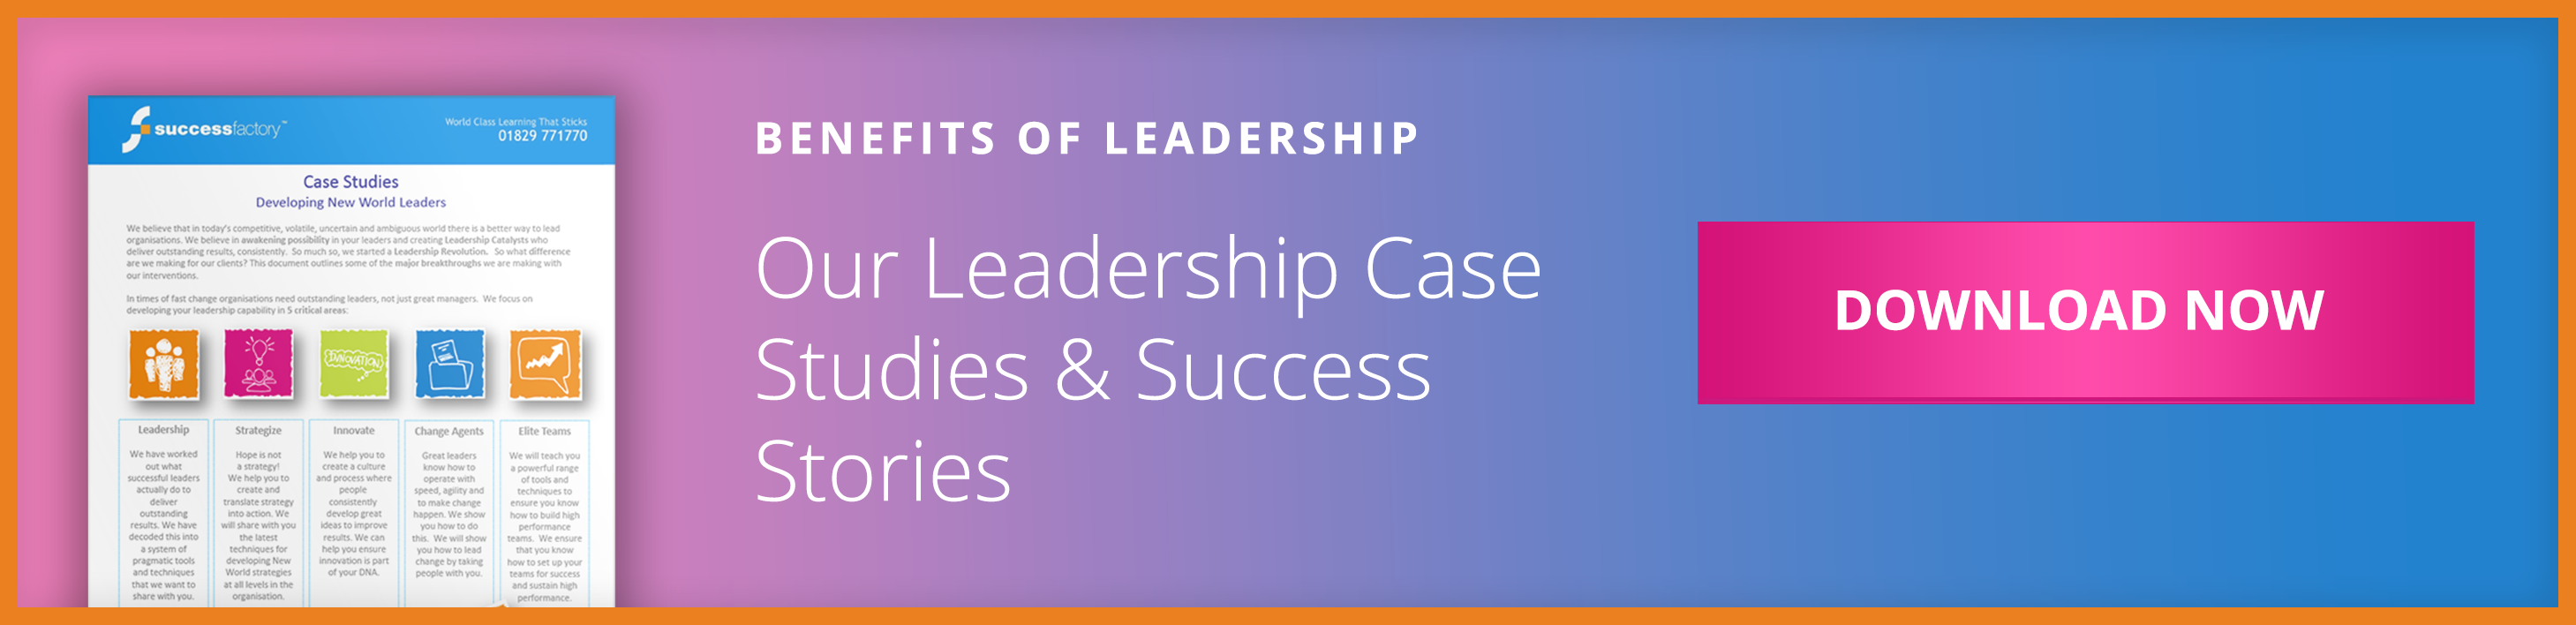 Our Leadership Case Studies & Success Stories CTA